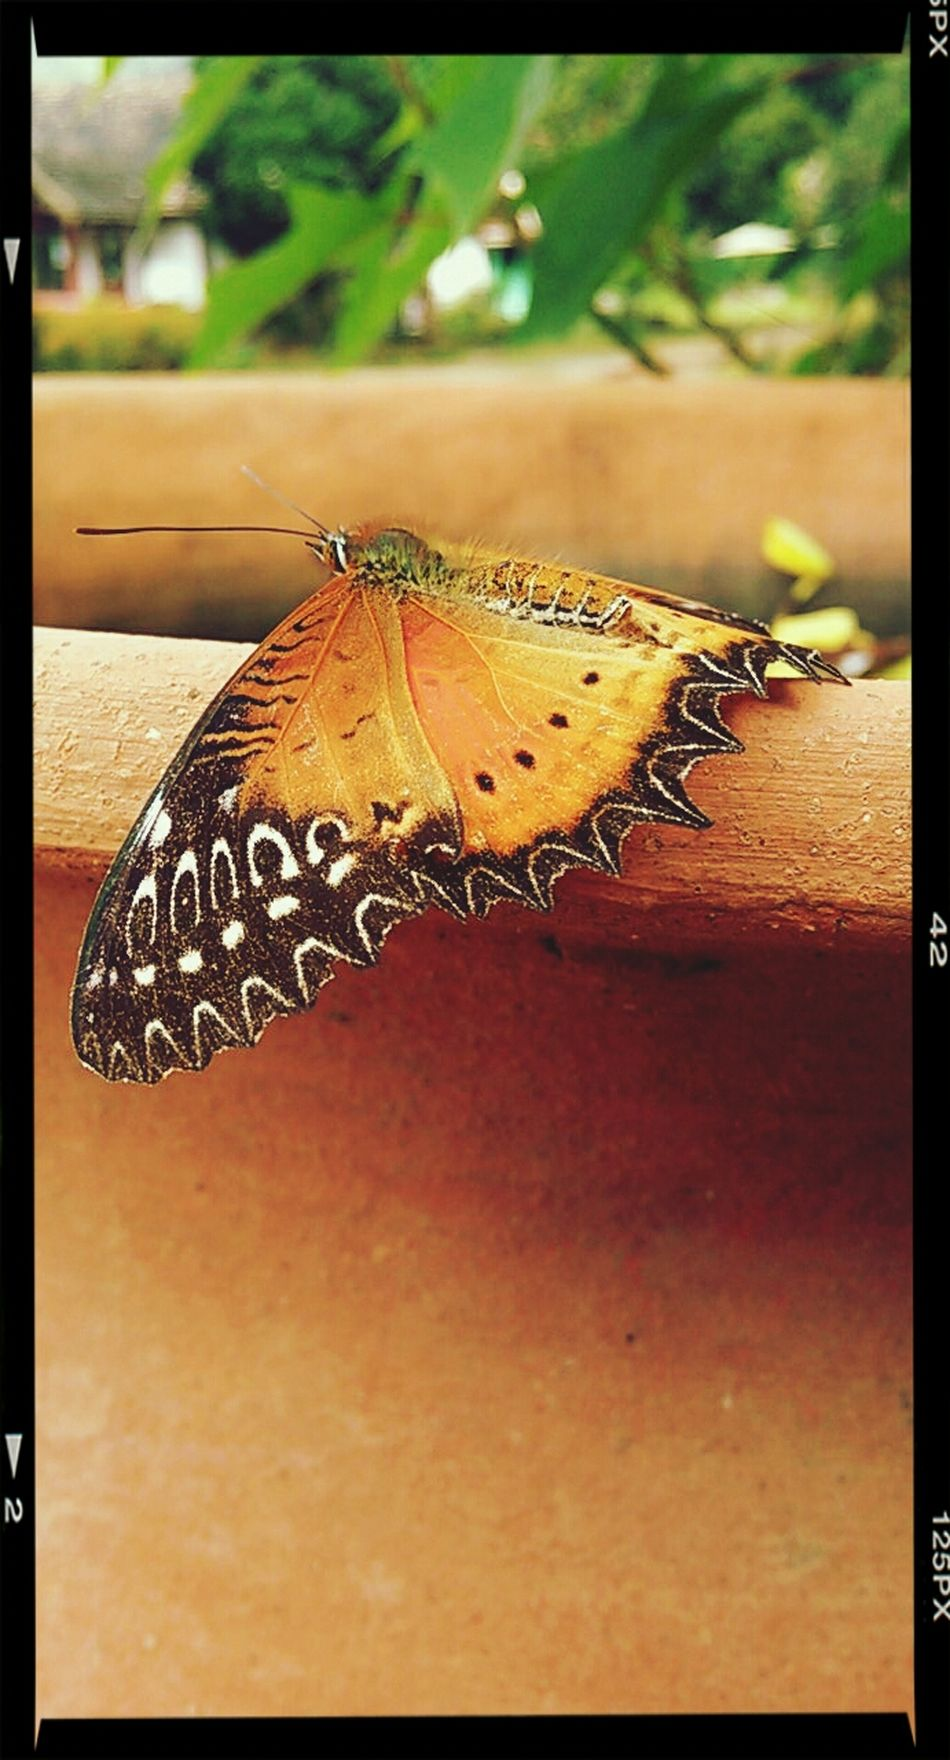 A butterfly on the clay jar Rest Mindfulness Insect Equanimity